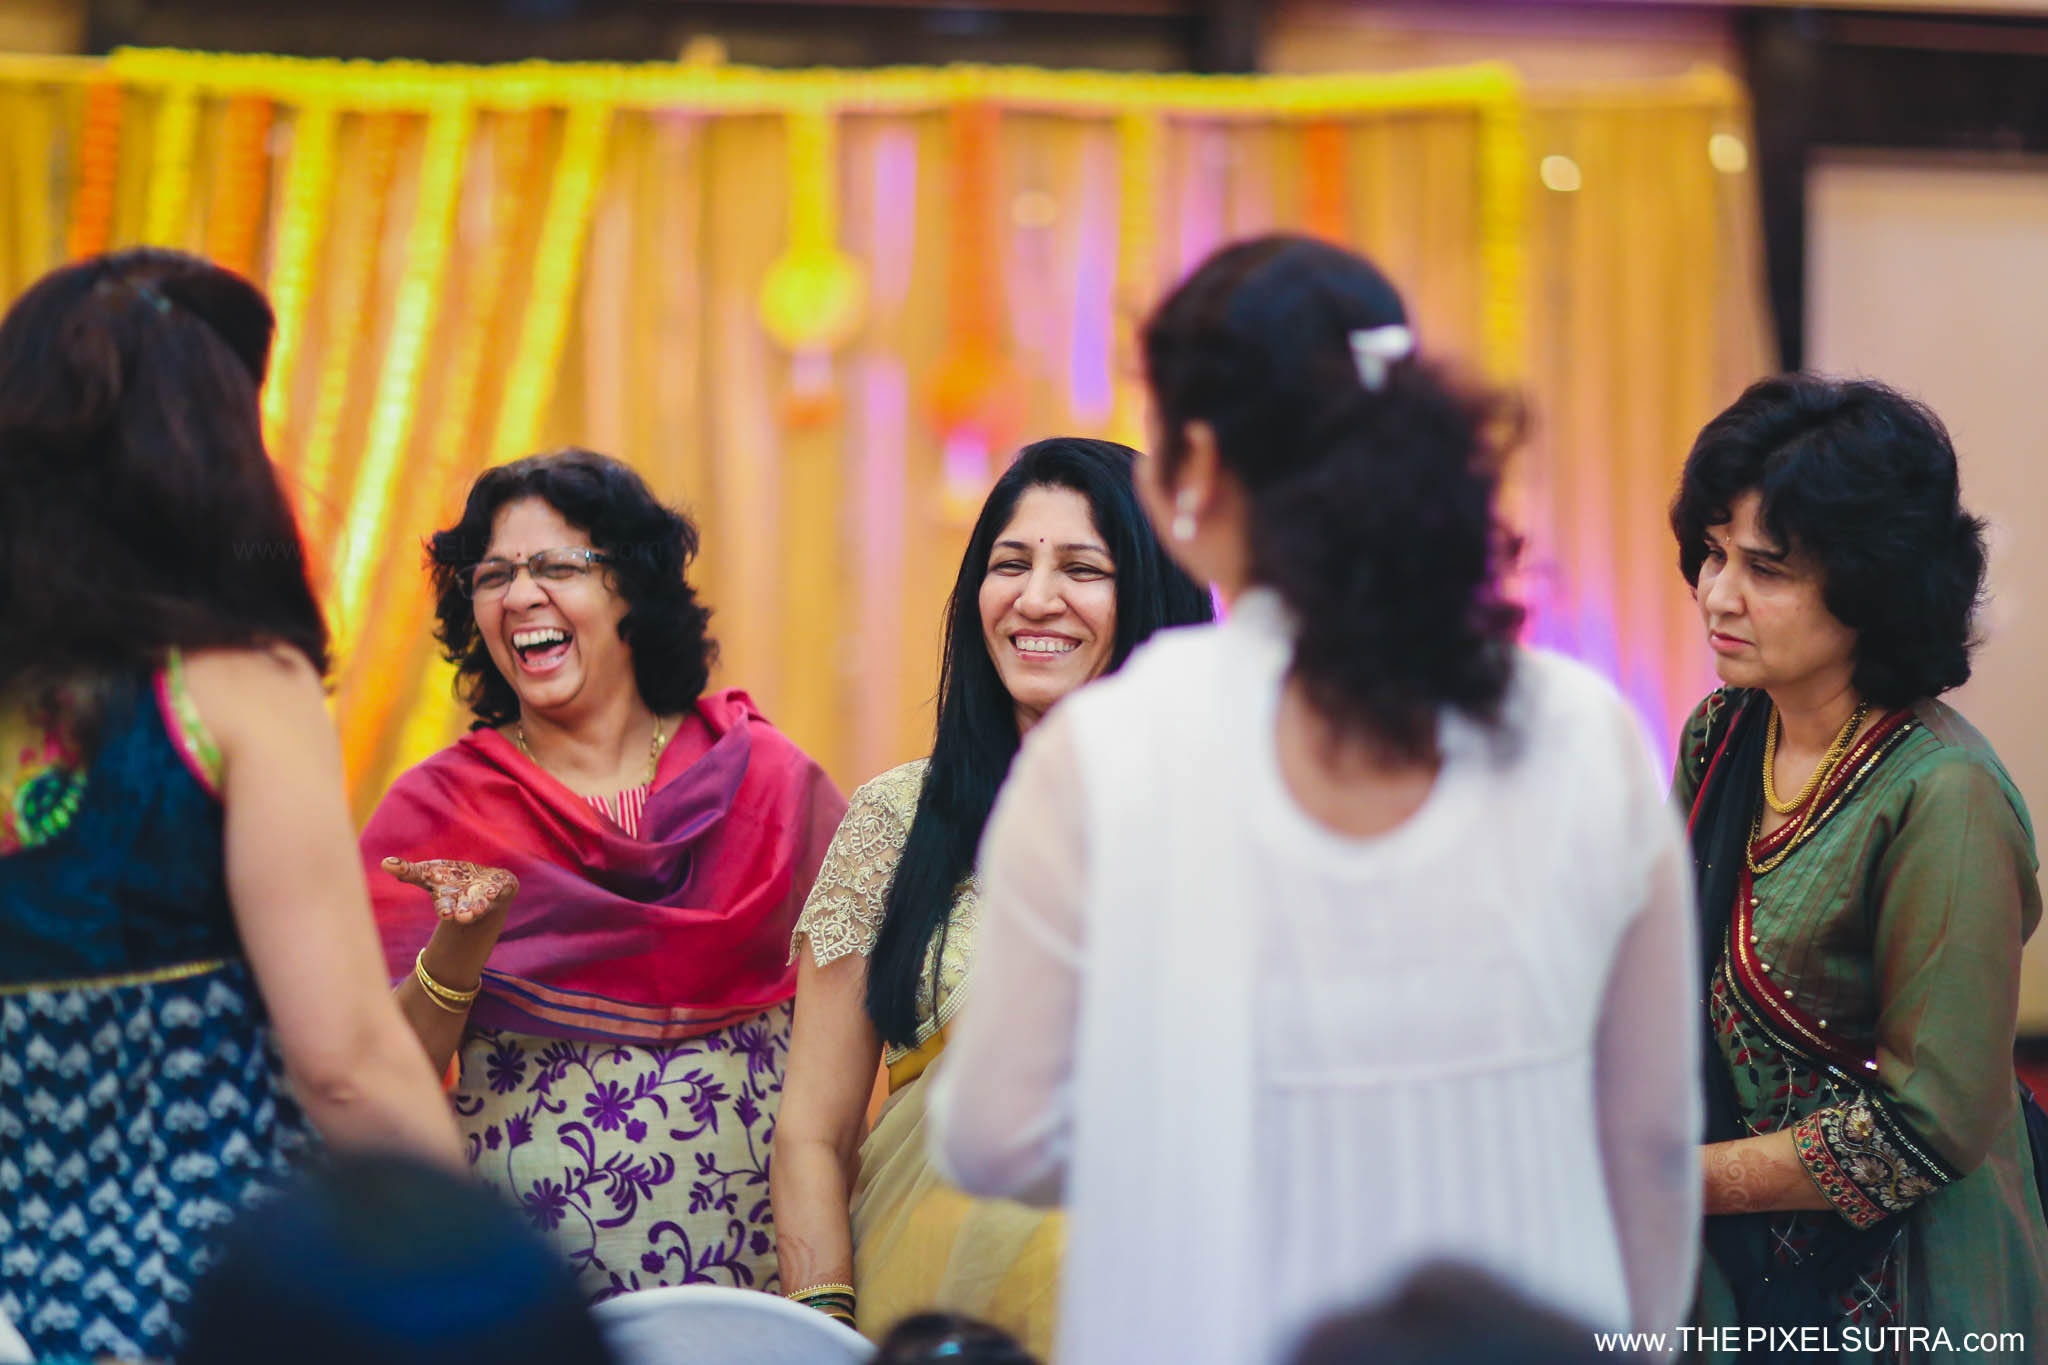 The Pixel Sutra Nachiket x Priyanka Candid Wedding photographer Mumbai Best  (4).jpg